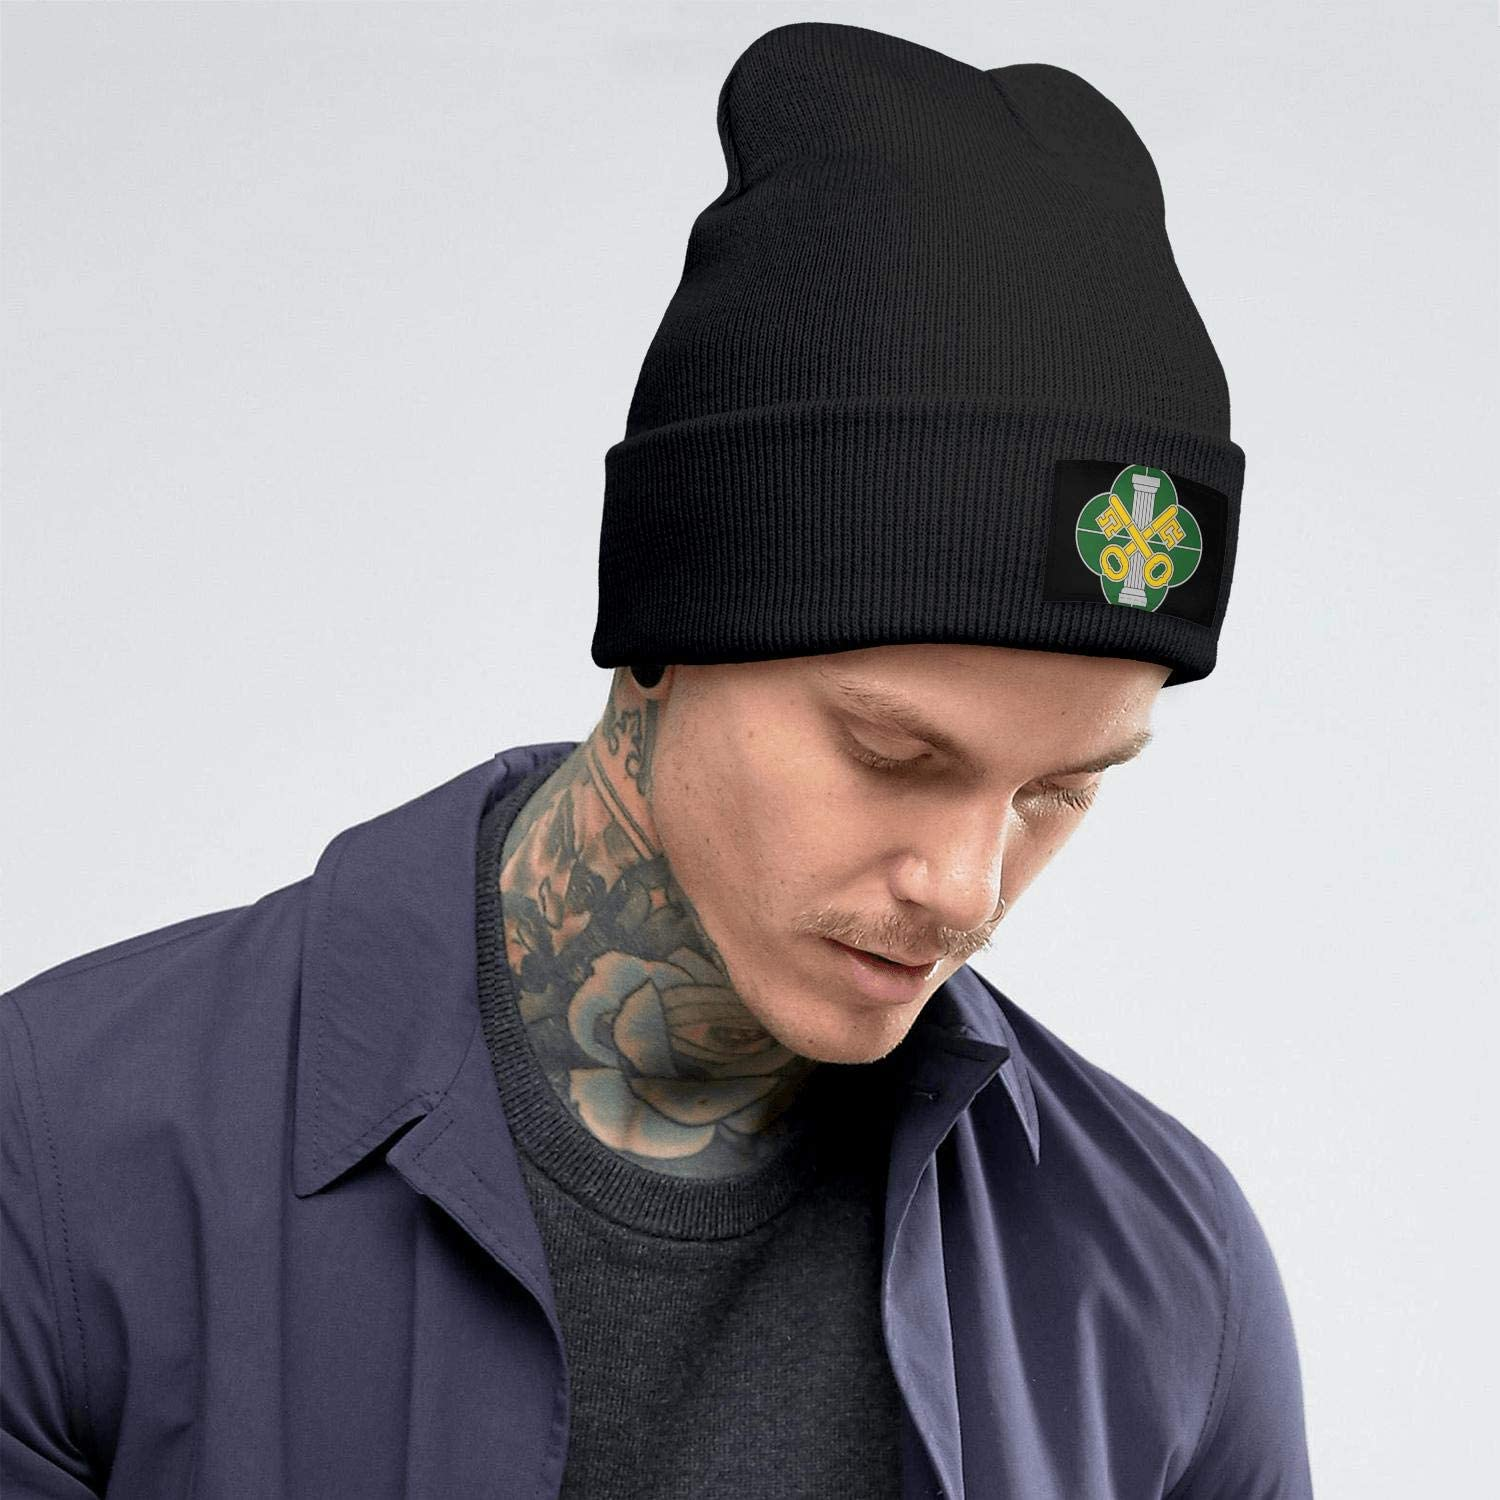 Cdfkjd Beanie Men Women USA 93rd Military Police Battalion Hat Perfect for Snowboarding